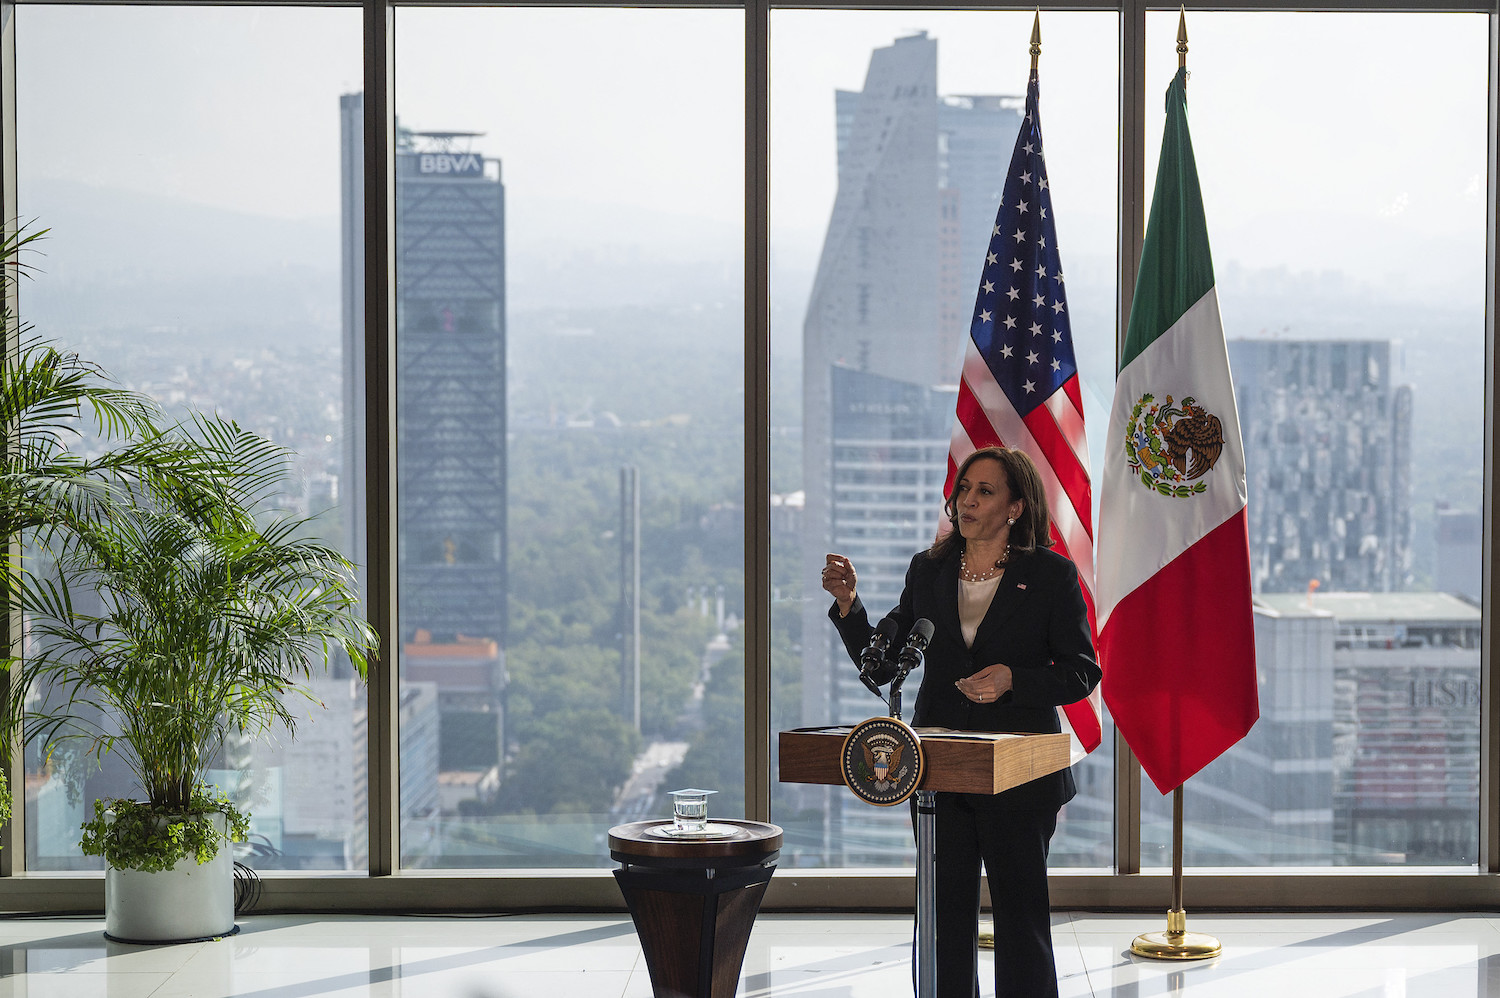 U.S. Vice President Kamala Harris speaks during a press conference at the Sofitel Mexico City Reforma in Mexico City on June 8.